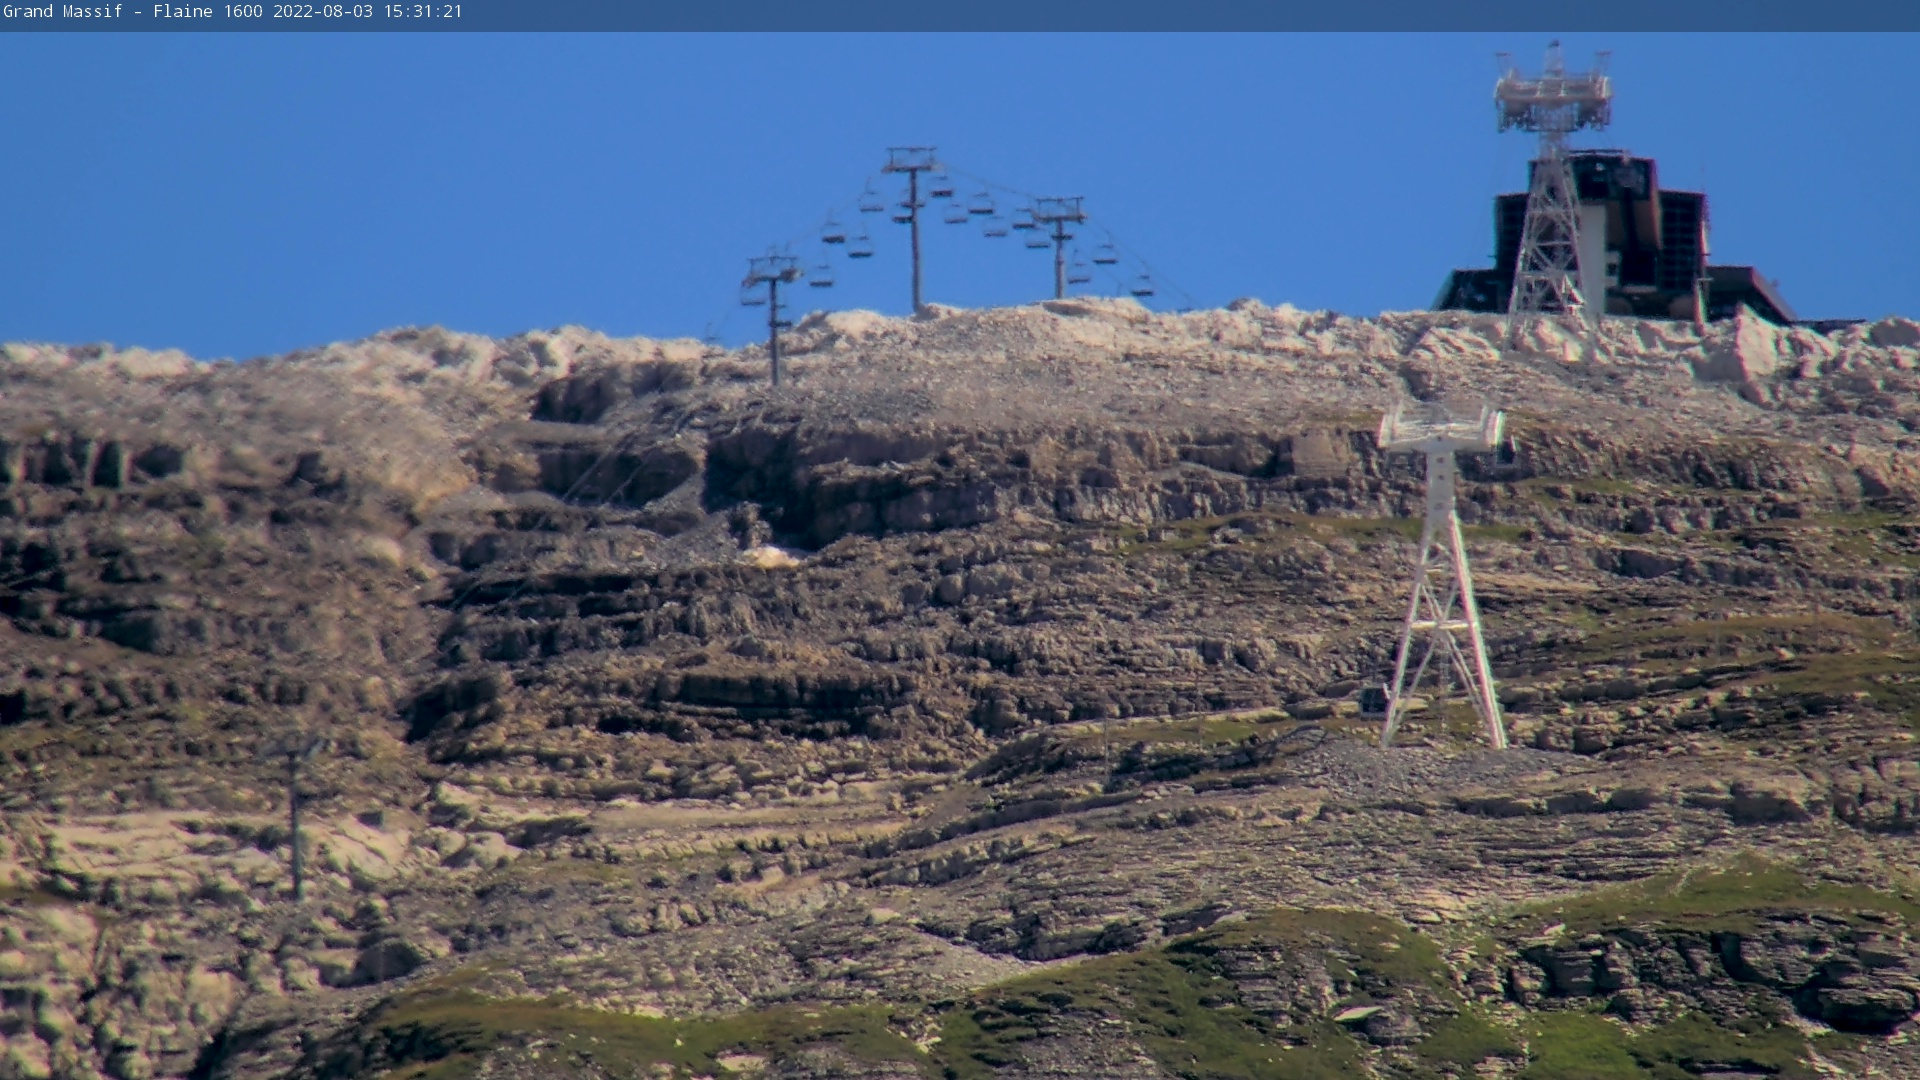 Webcam Flaine